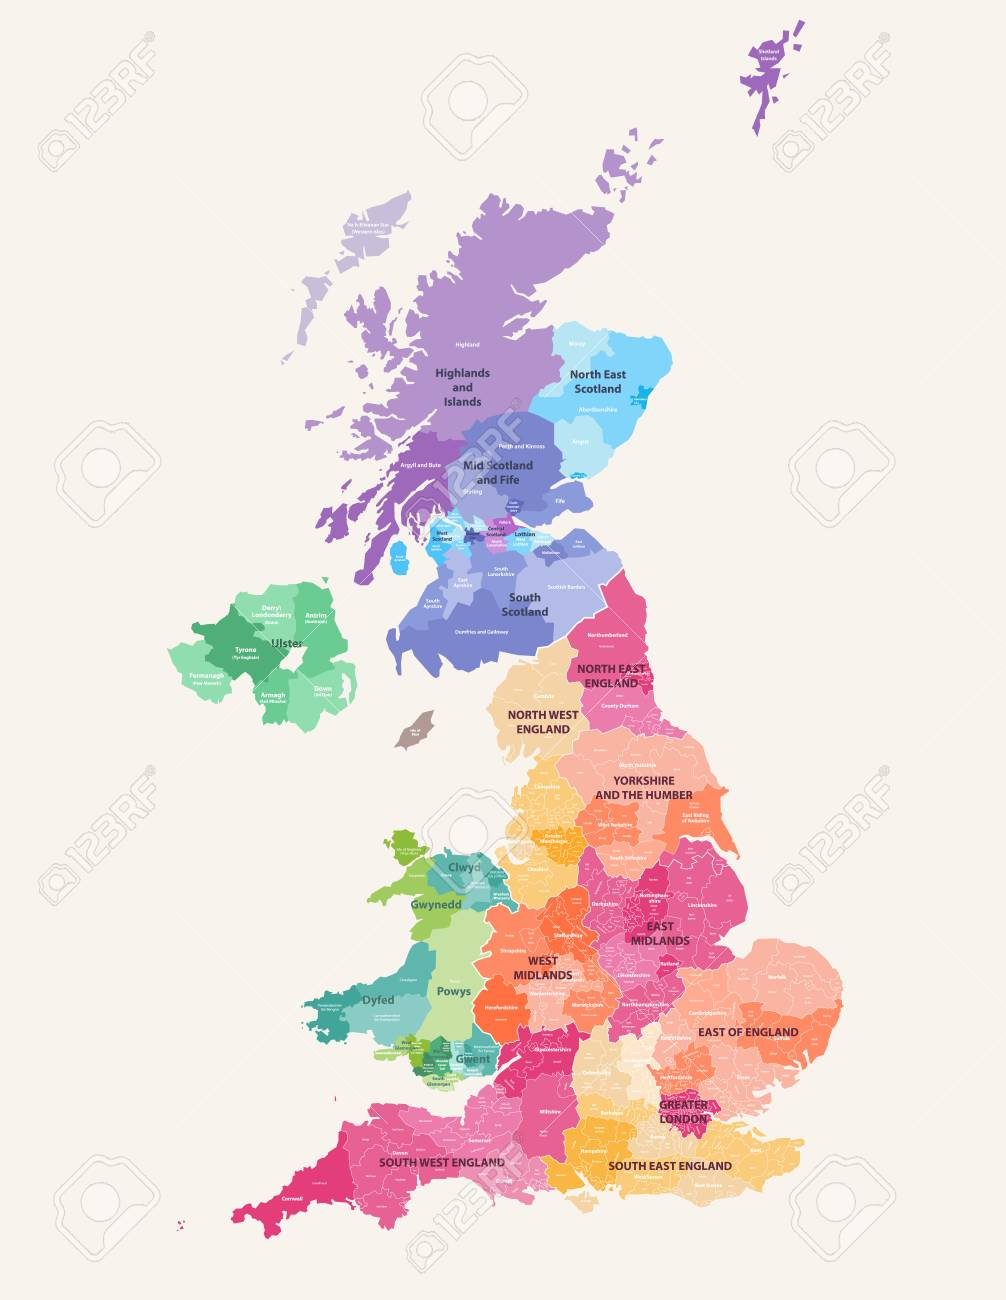 Map Of Northern Ireland With Counties.Colored Map Of The United Kingdom Districts And Counties Map